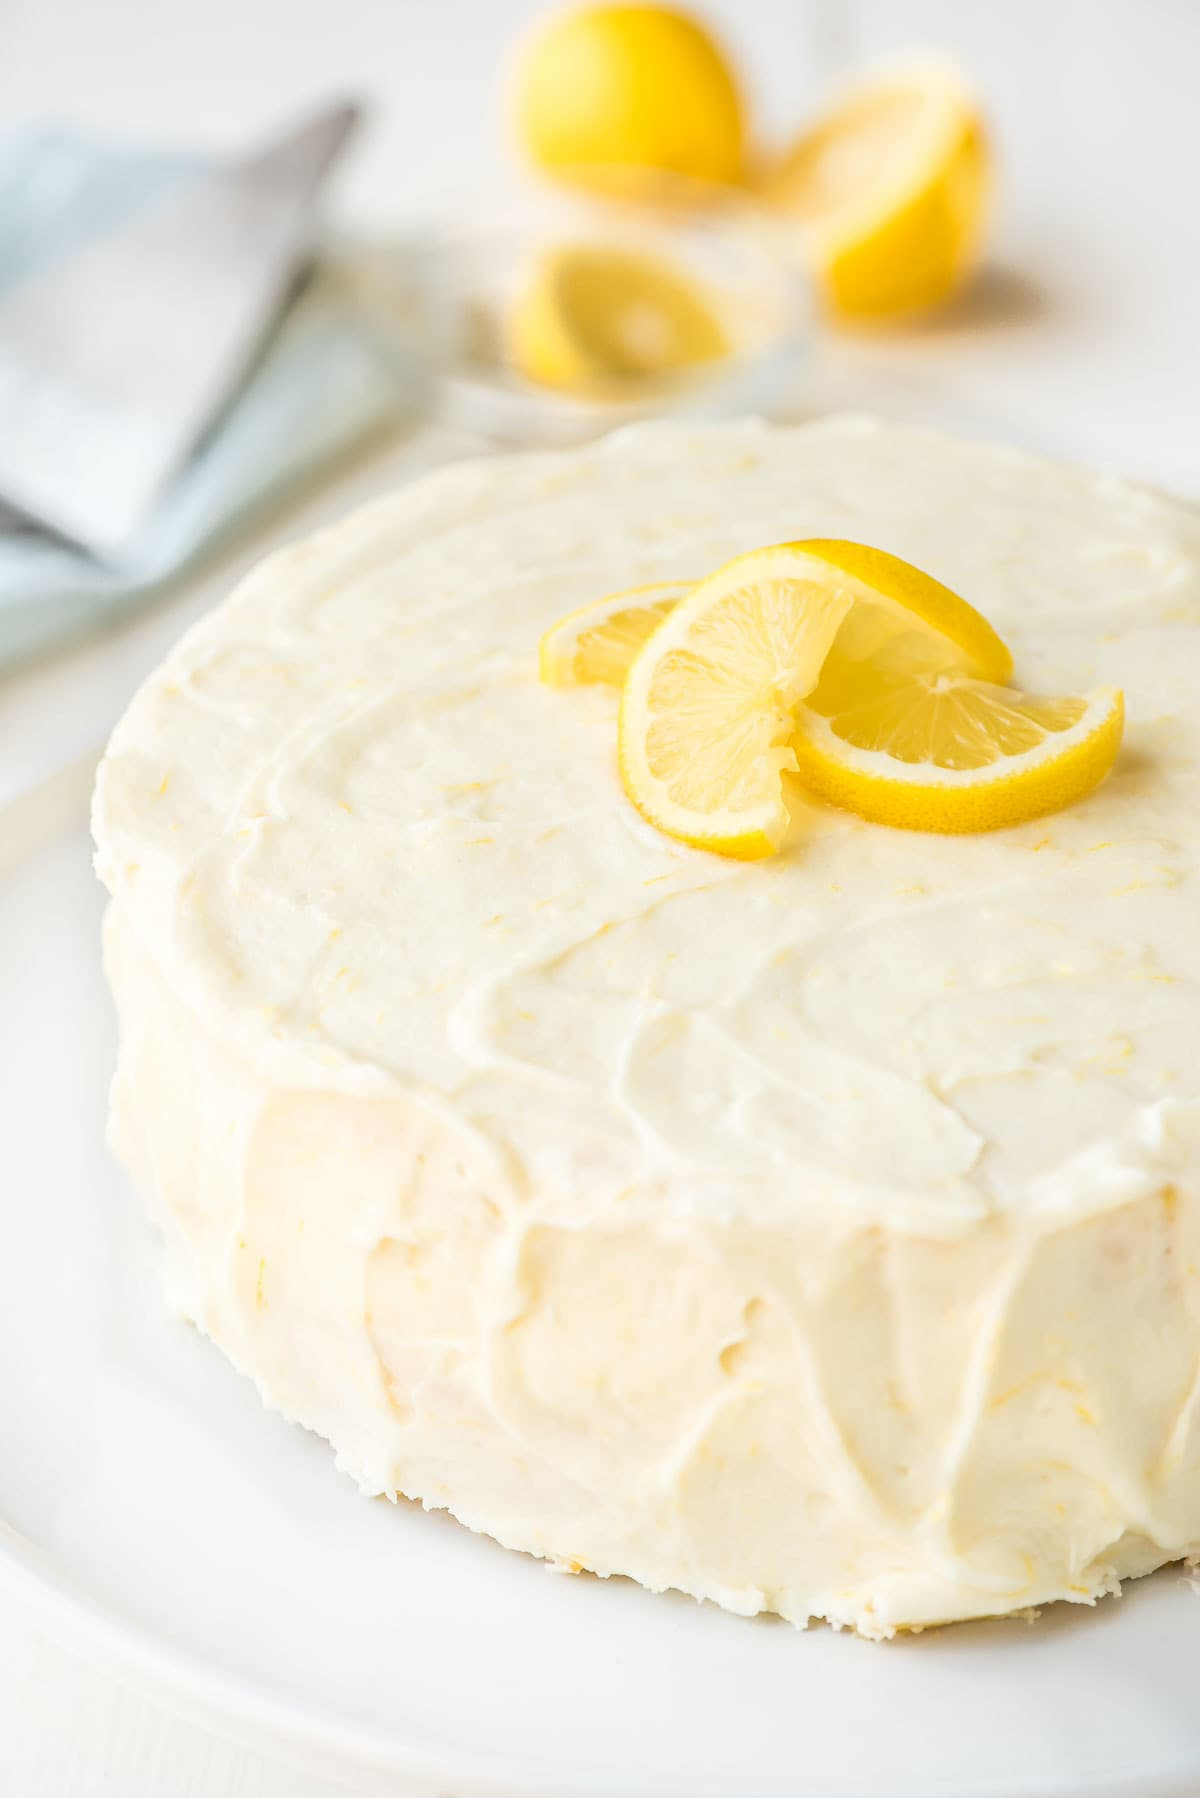 Sponge Cake With Cream Cheese Frosting